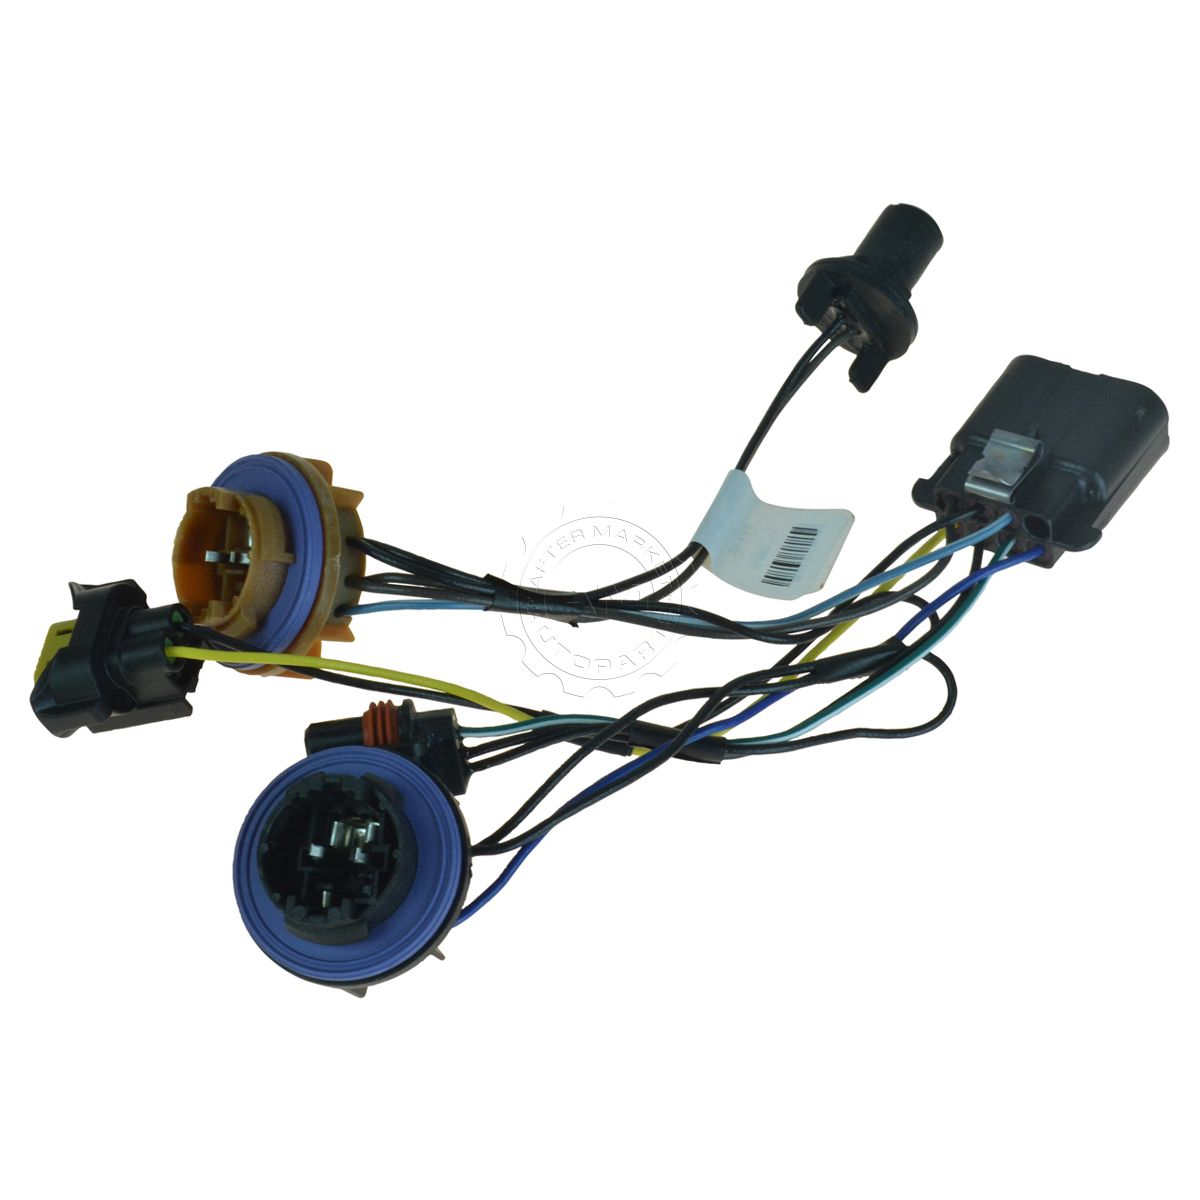 hight resolution of oem 15950809 headlight wiring harness left or right side lh rh for gm pickup suv